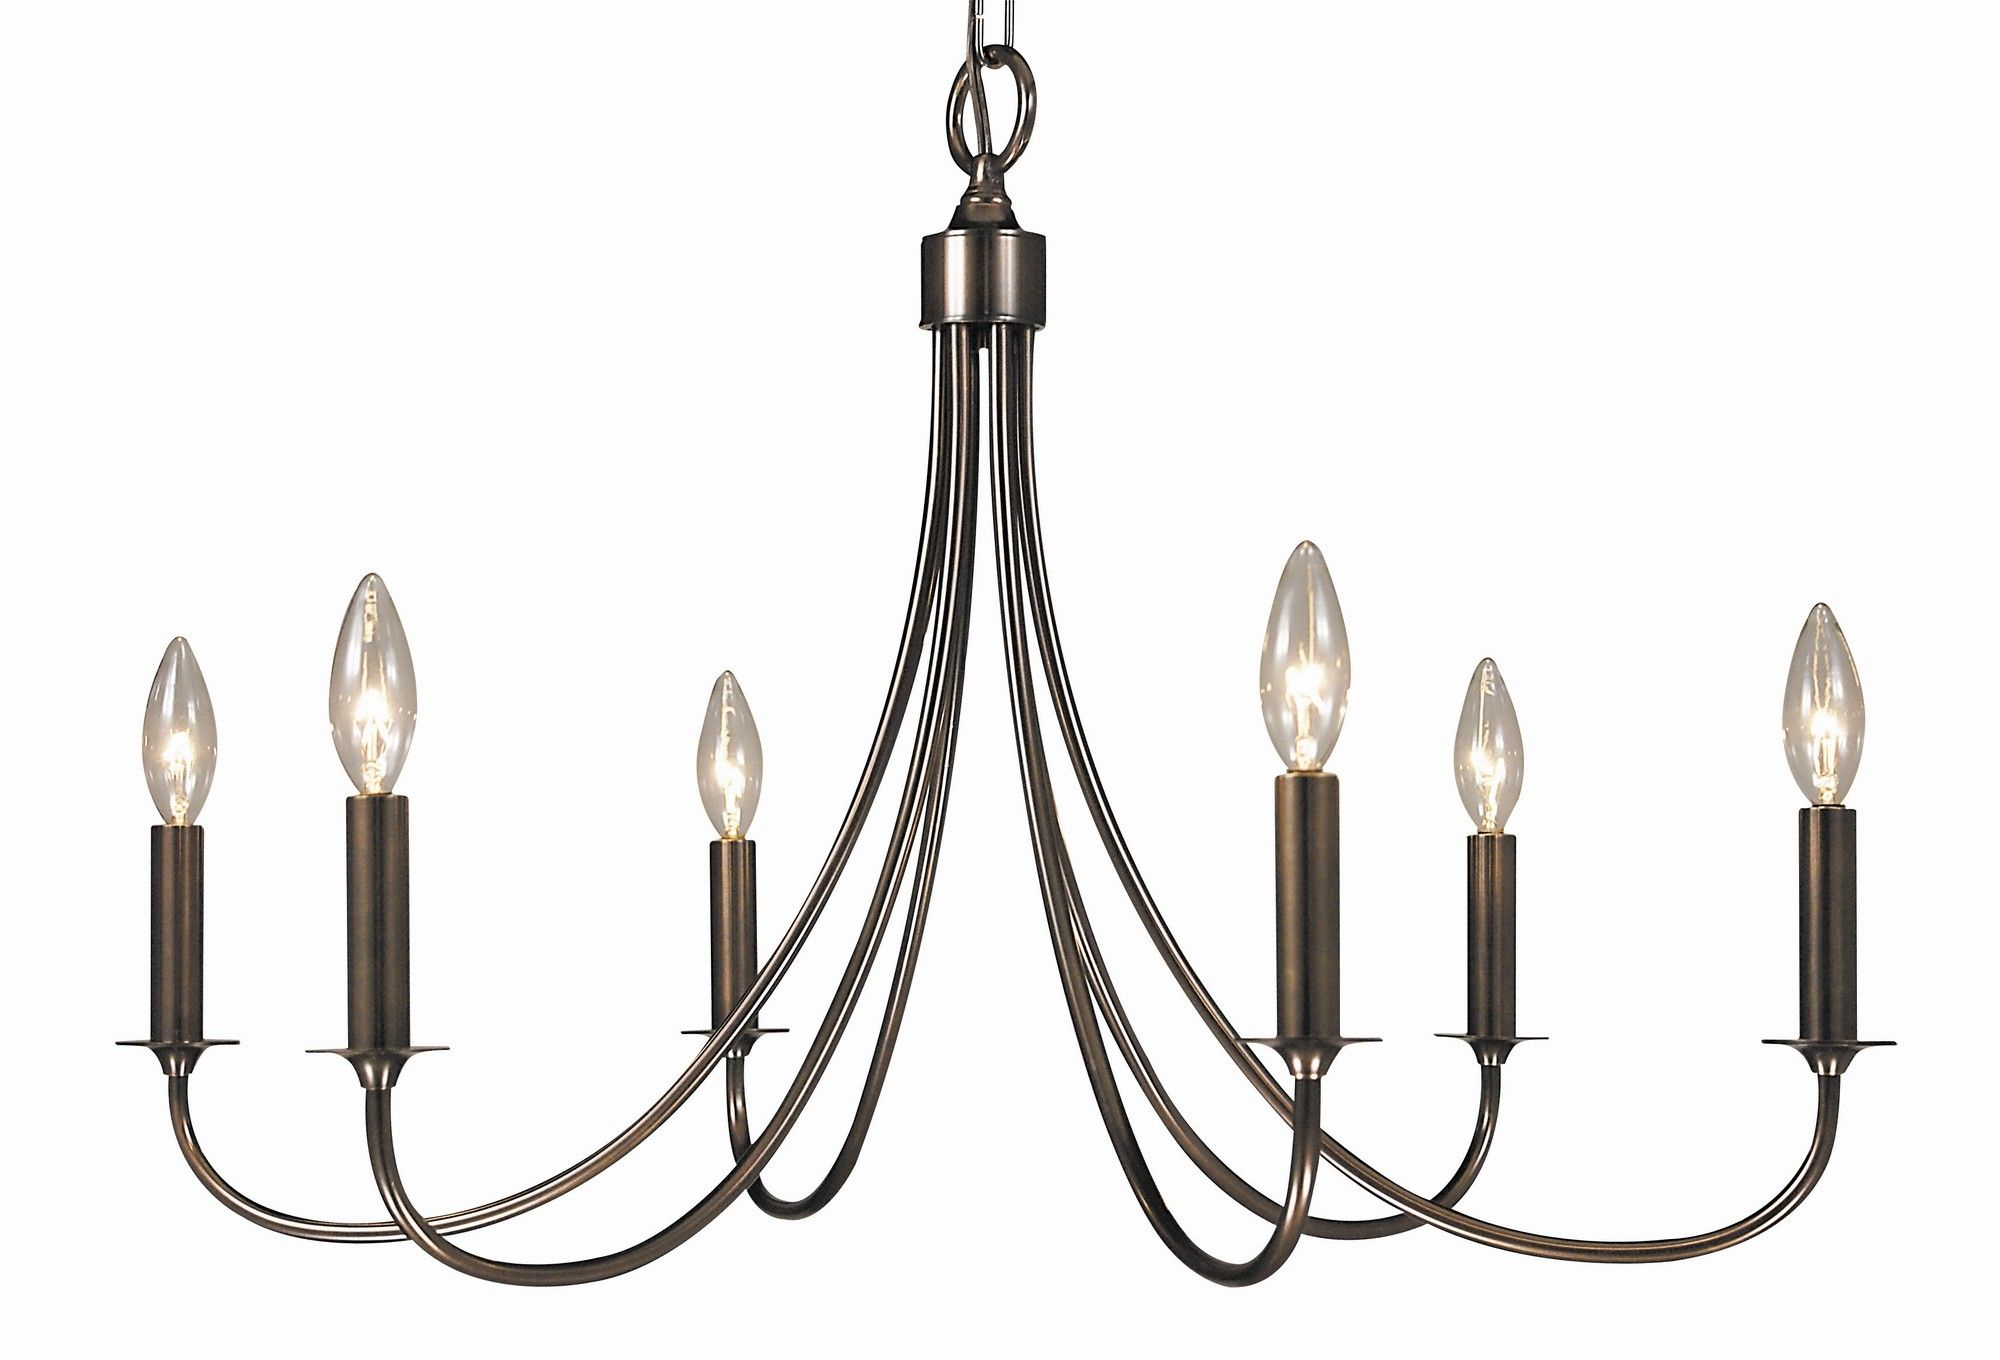 Framburg Maisonette 6 Light Dining Chandelier & Reviews Intended For Giverny 9 Light Candle Style Chandeliers (View 22 of 30)